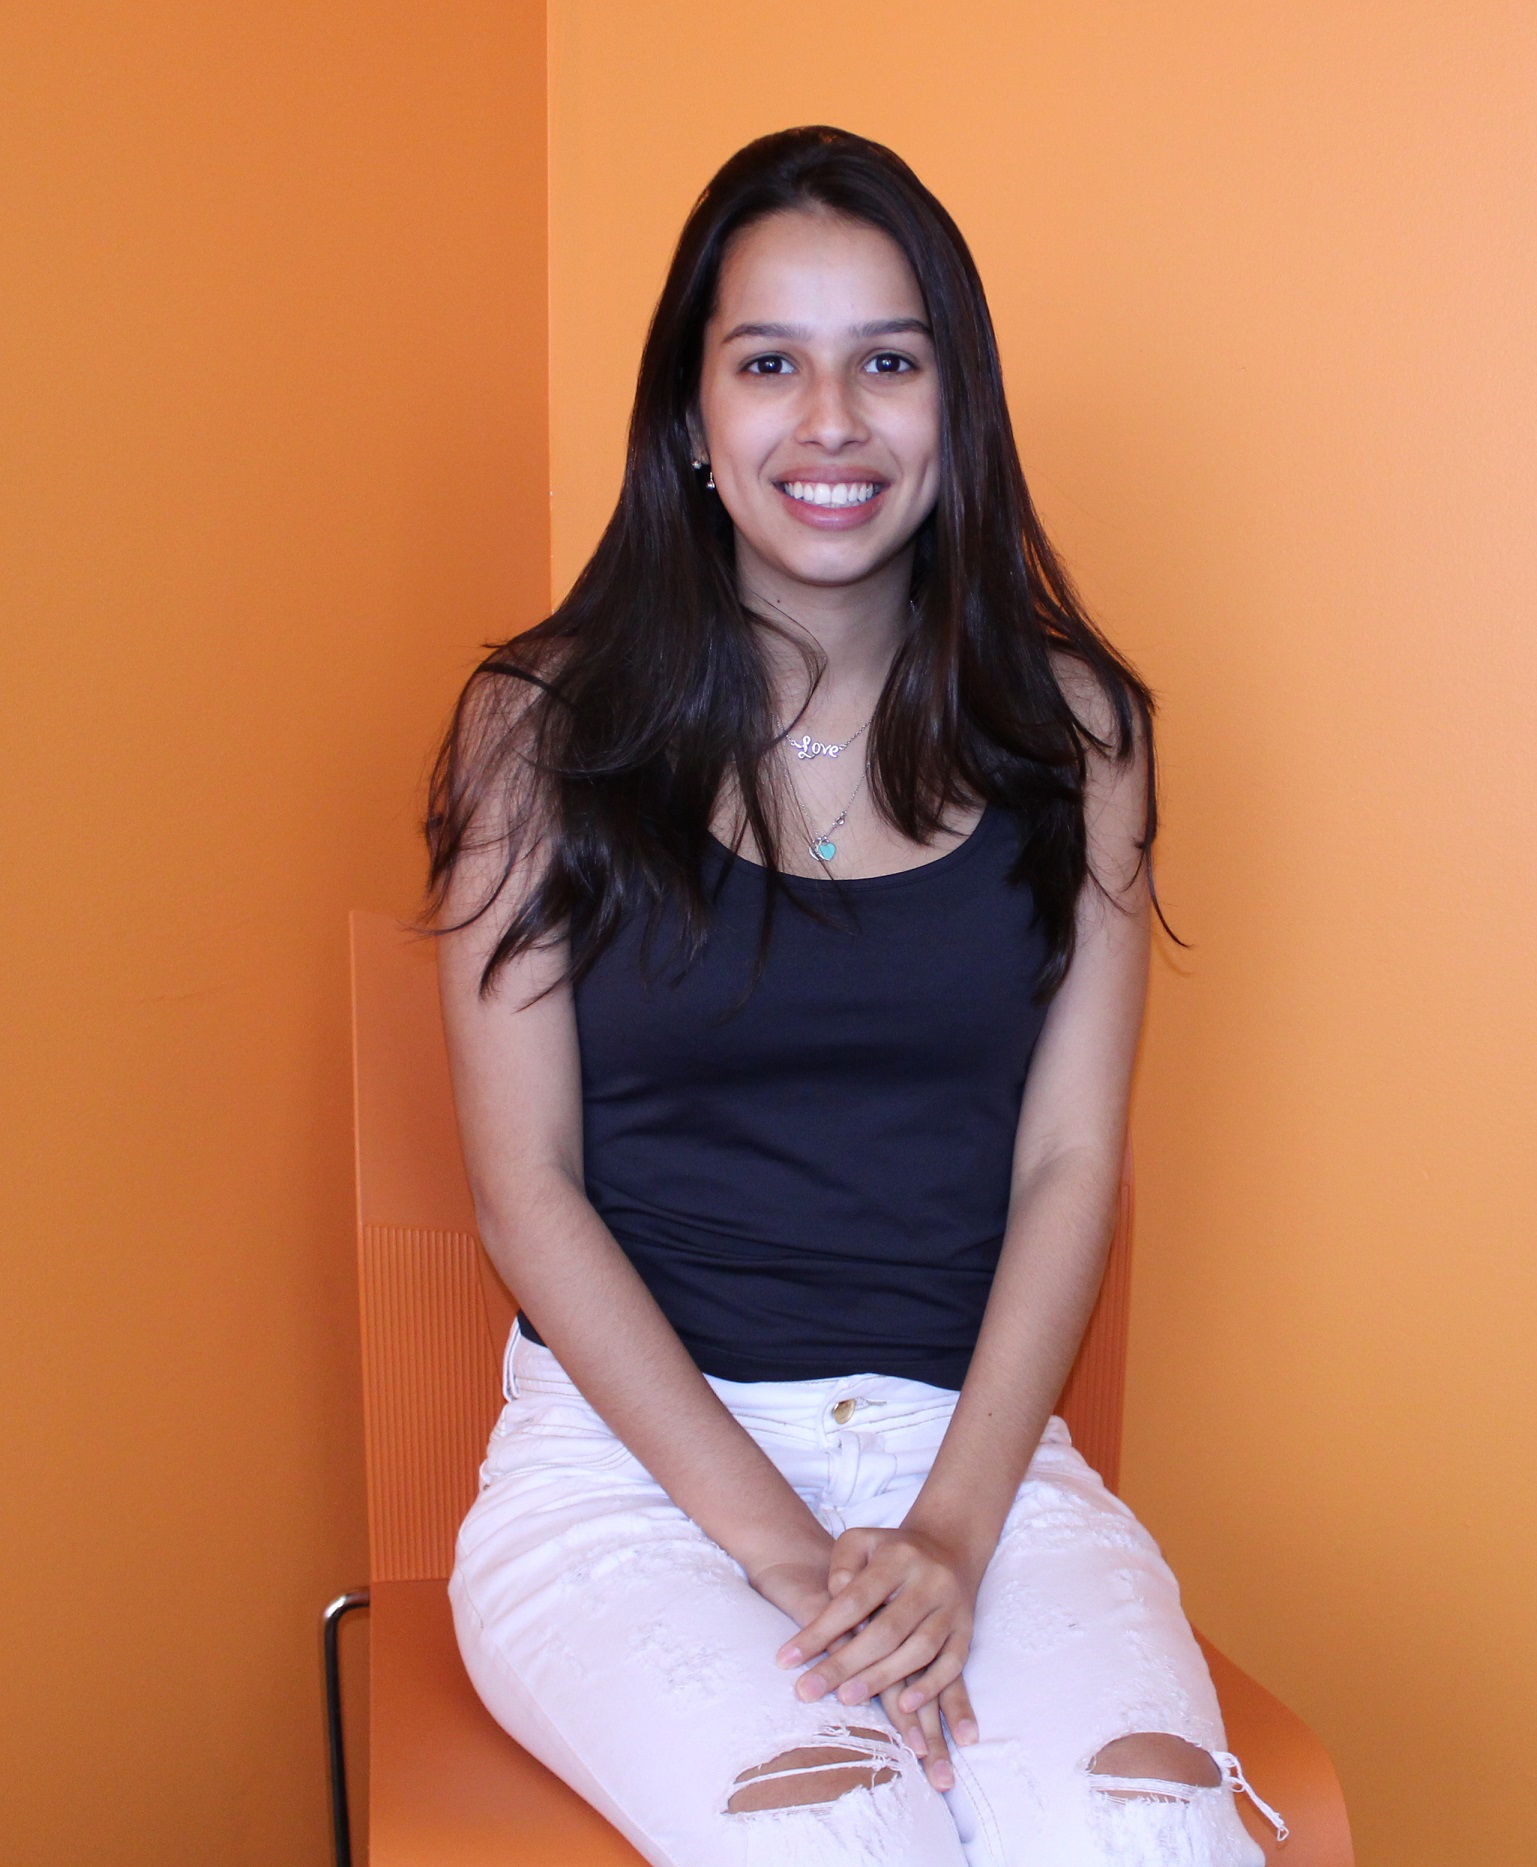 Maria Carolina Lima Santoro from Brazil is taking an English course in Montreal with EC: